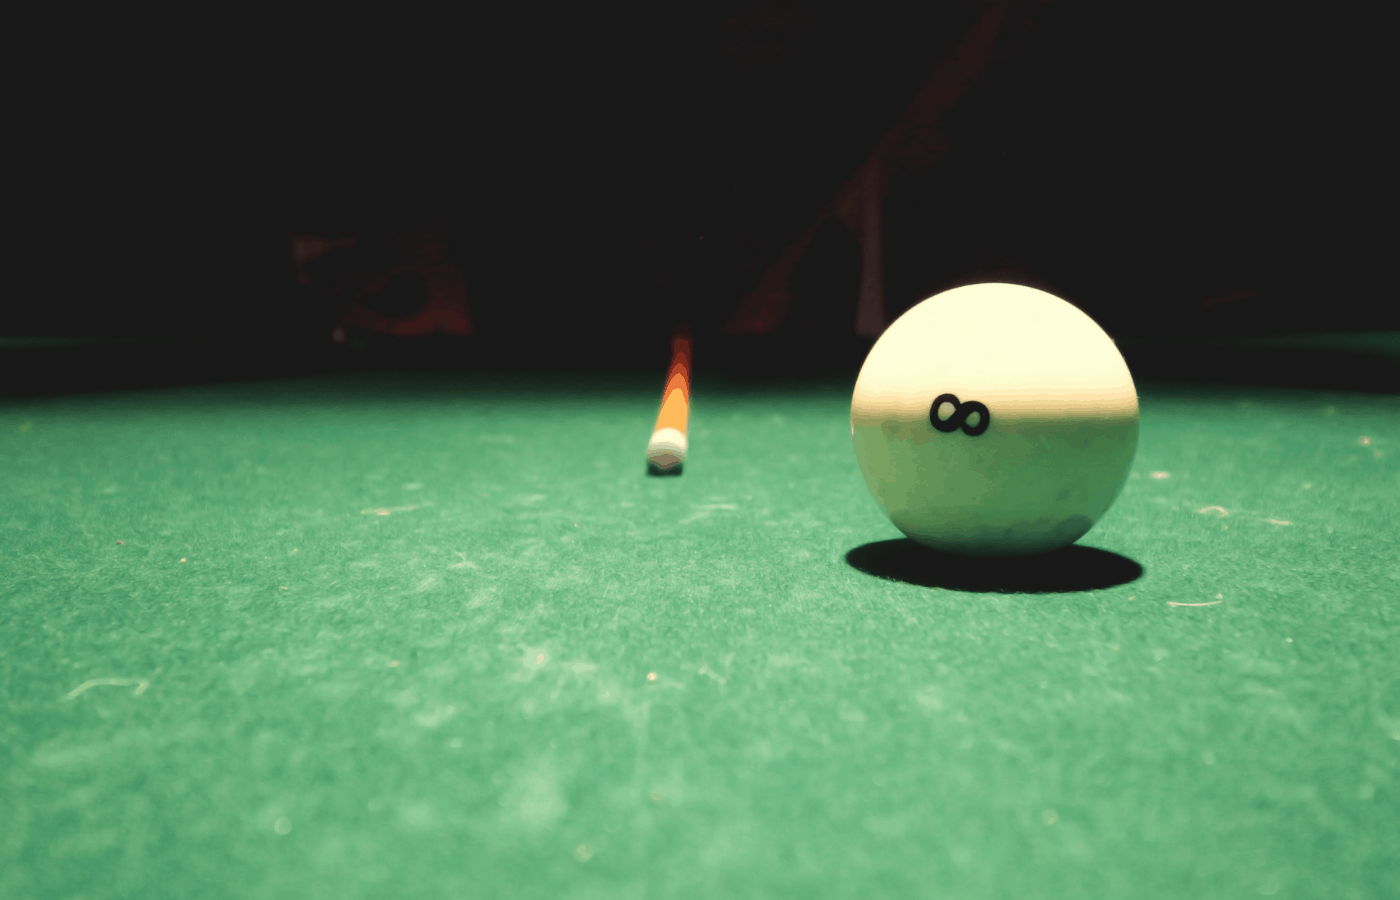 how to remove burn marks from pool table felt